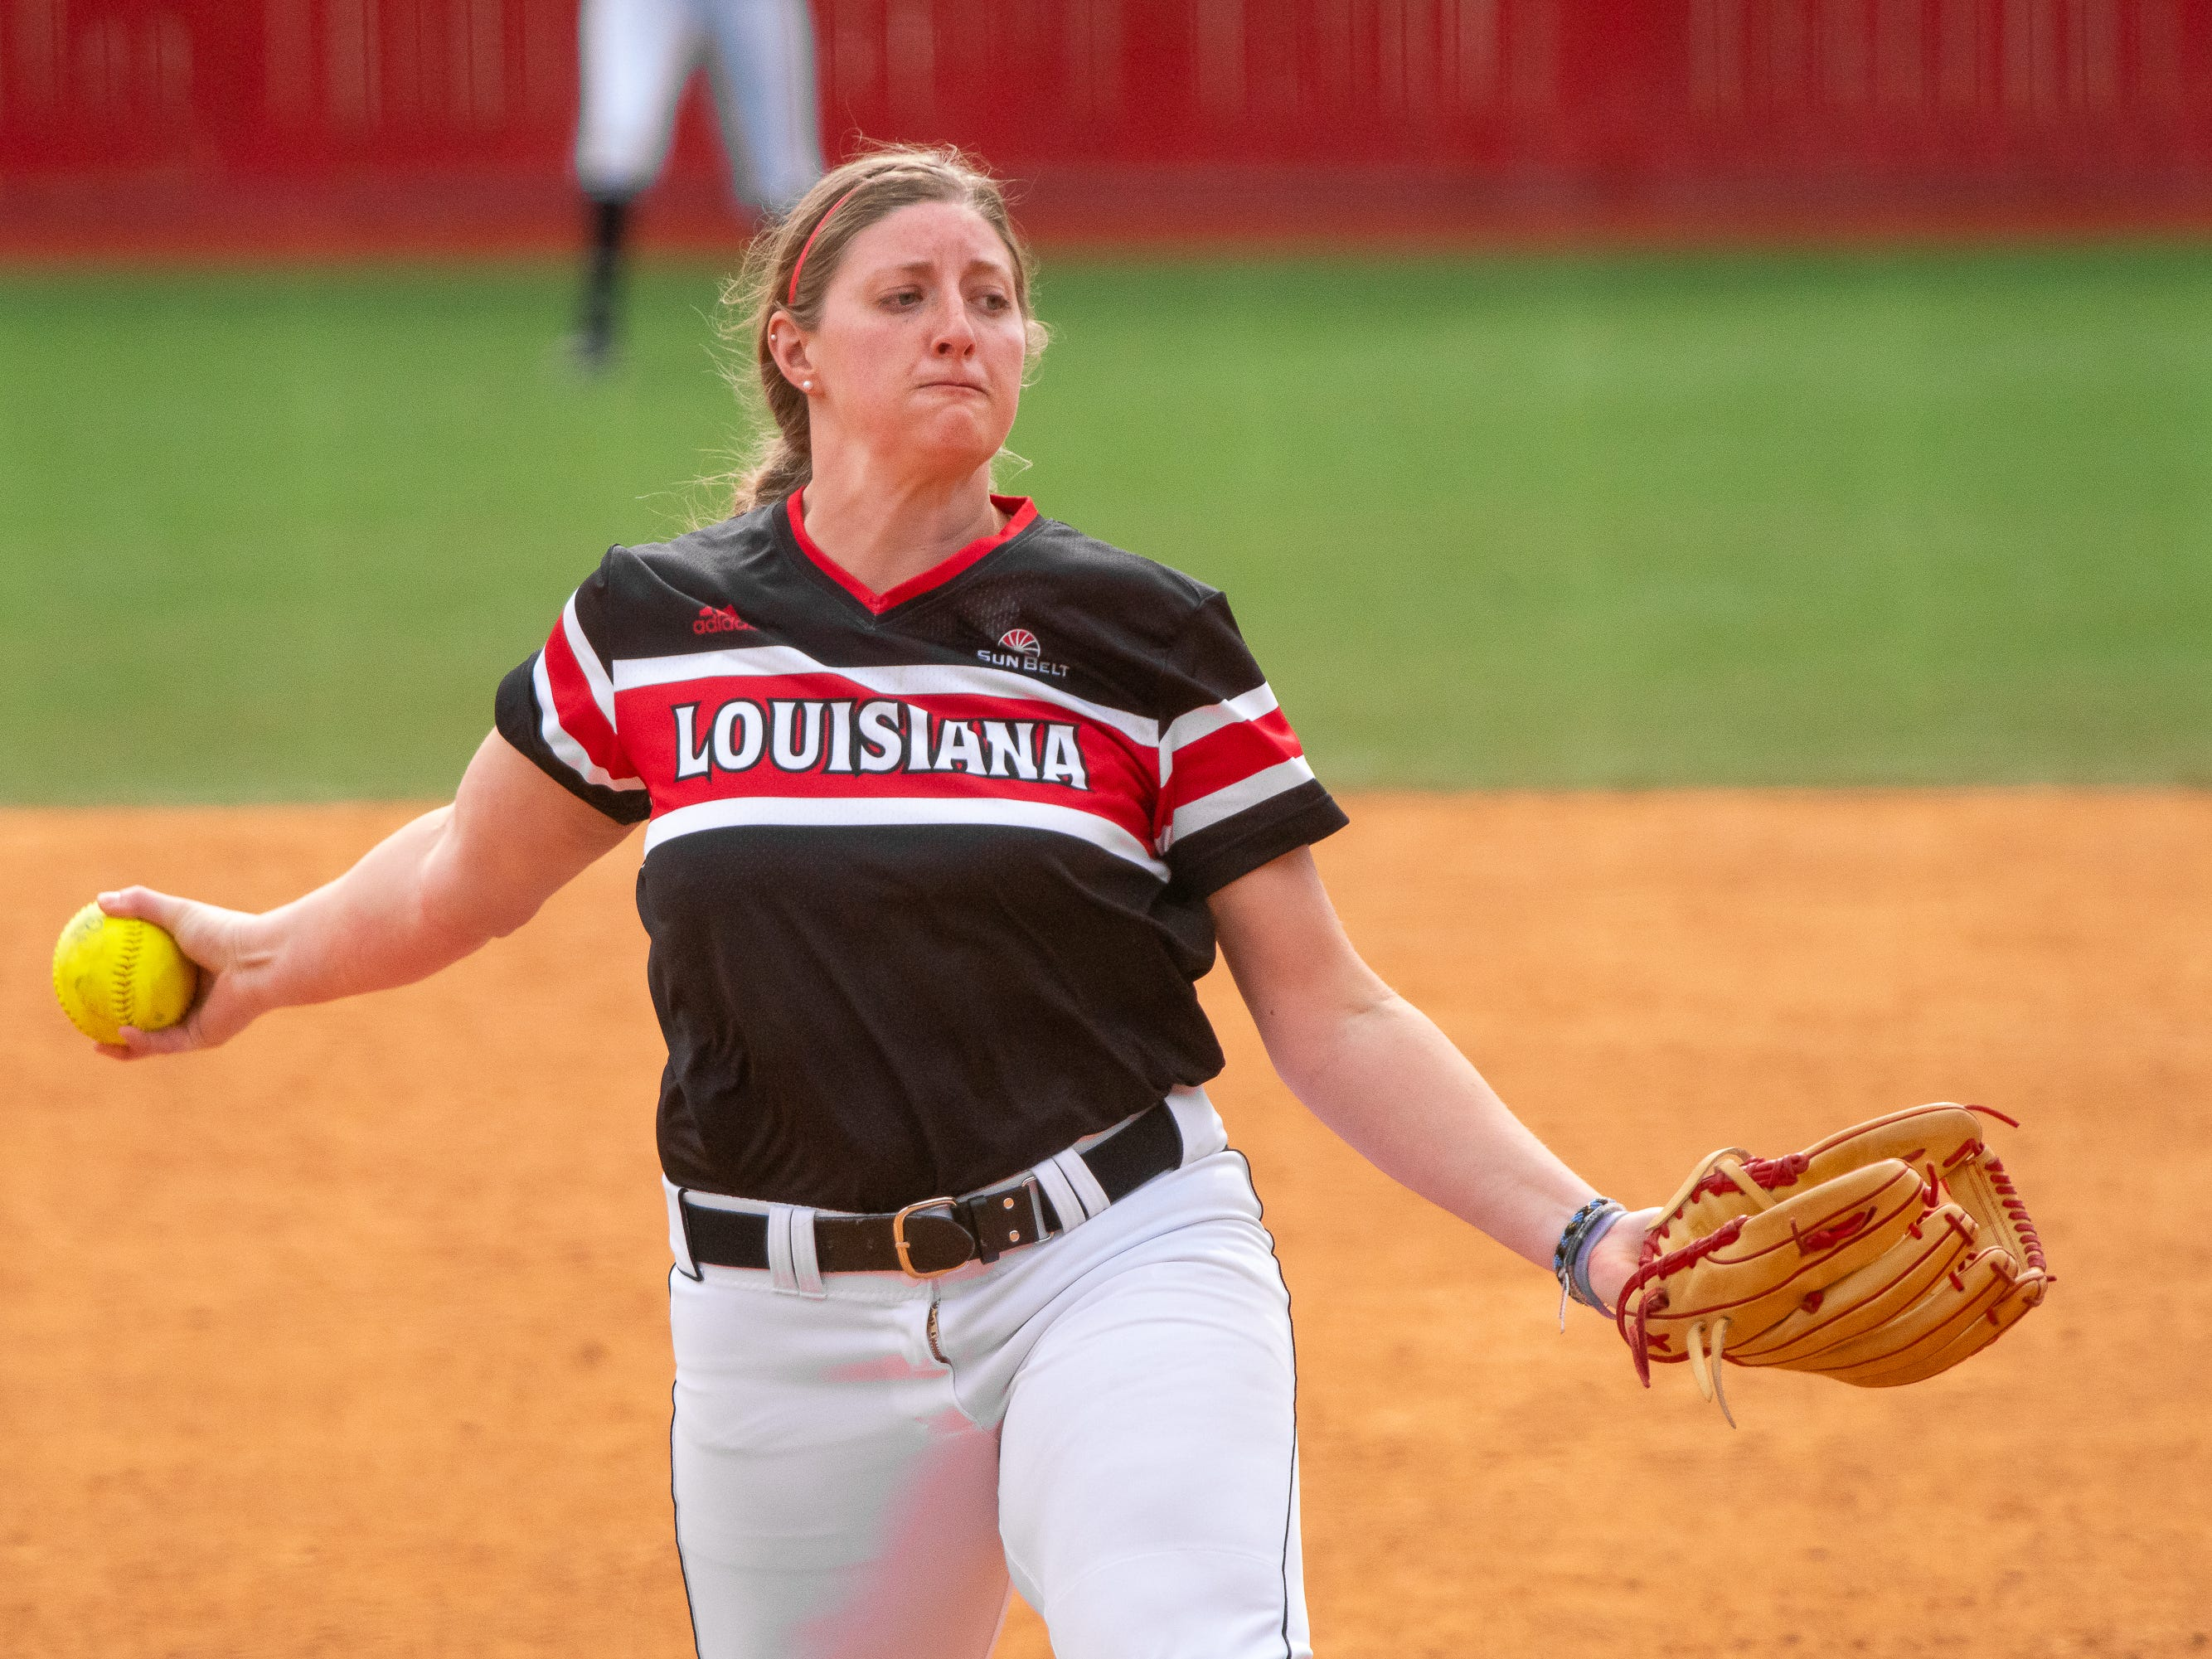 UL's Carrie Boswell throws a pitch as the Ragin' Cajuns take on the Troy Trojans at Yvette Girouard Field at Lamson Park on Saturday, March 16, 2019.